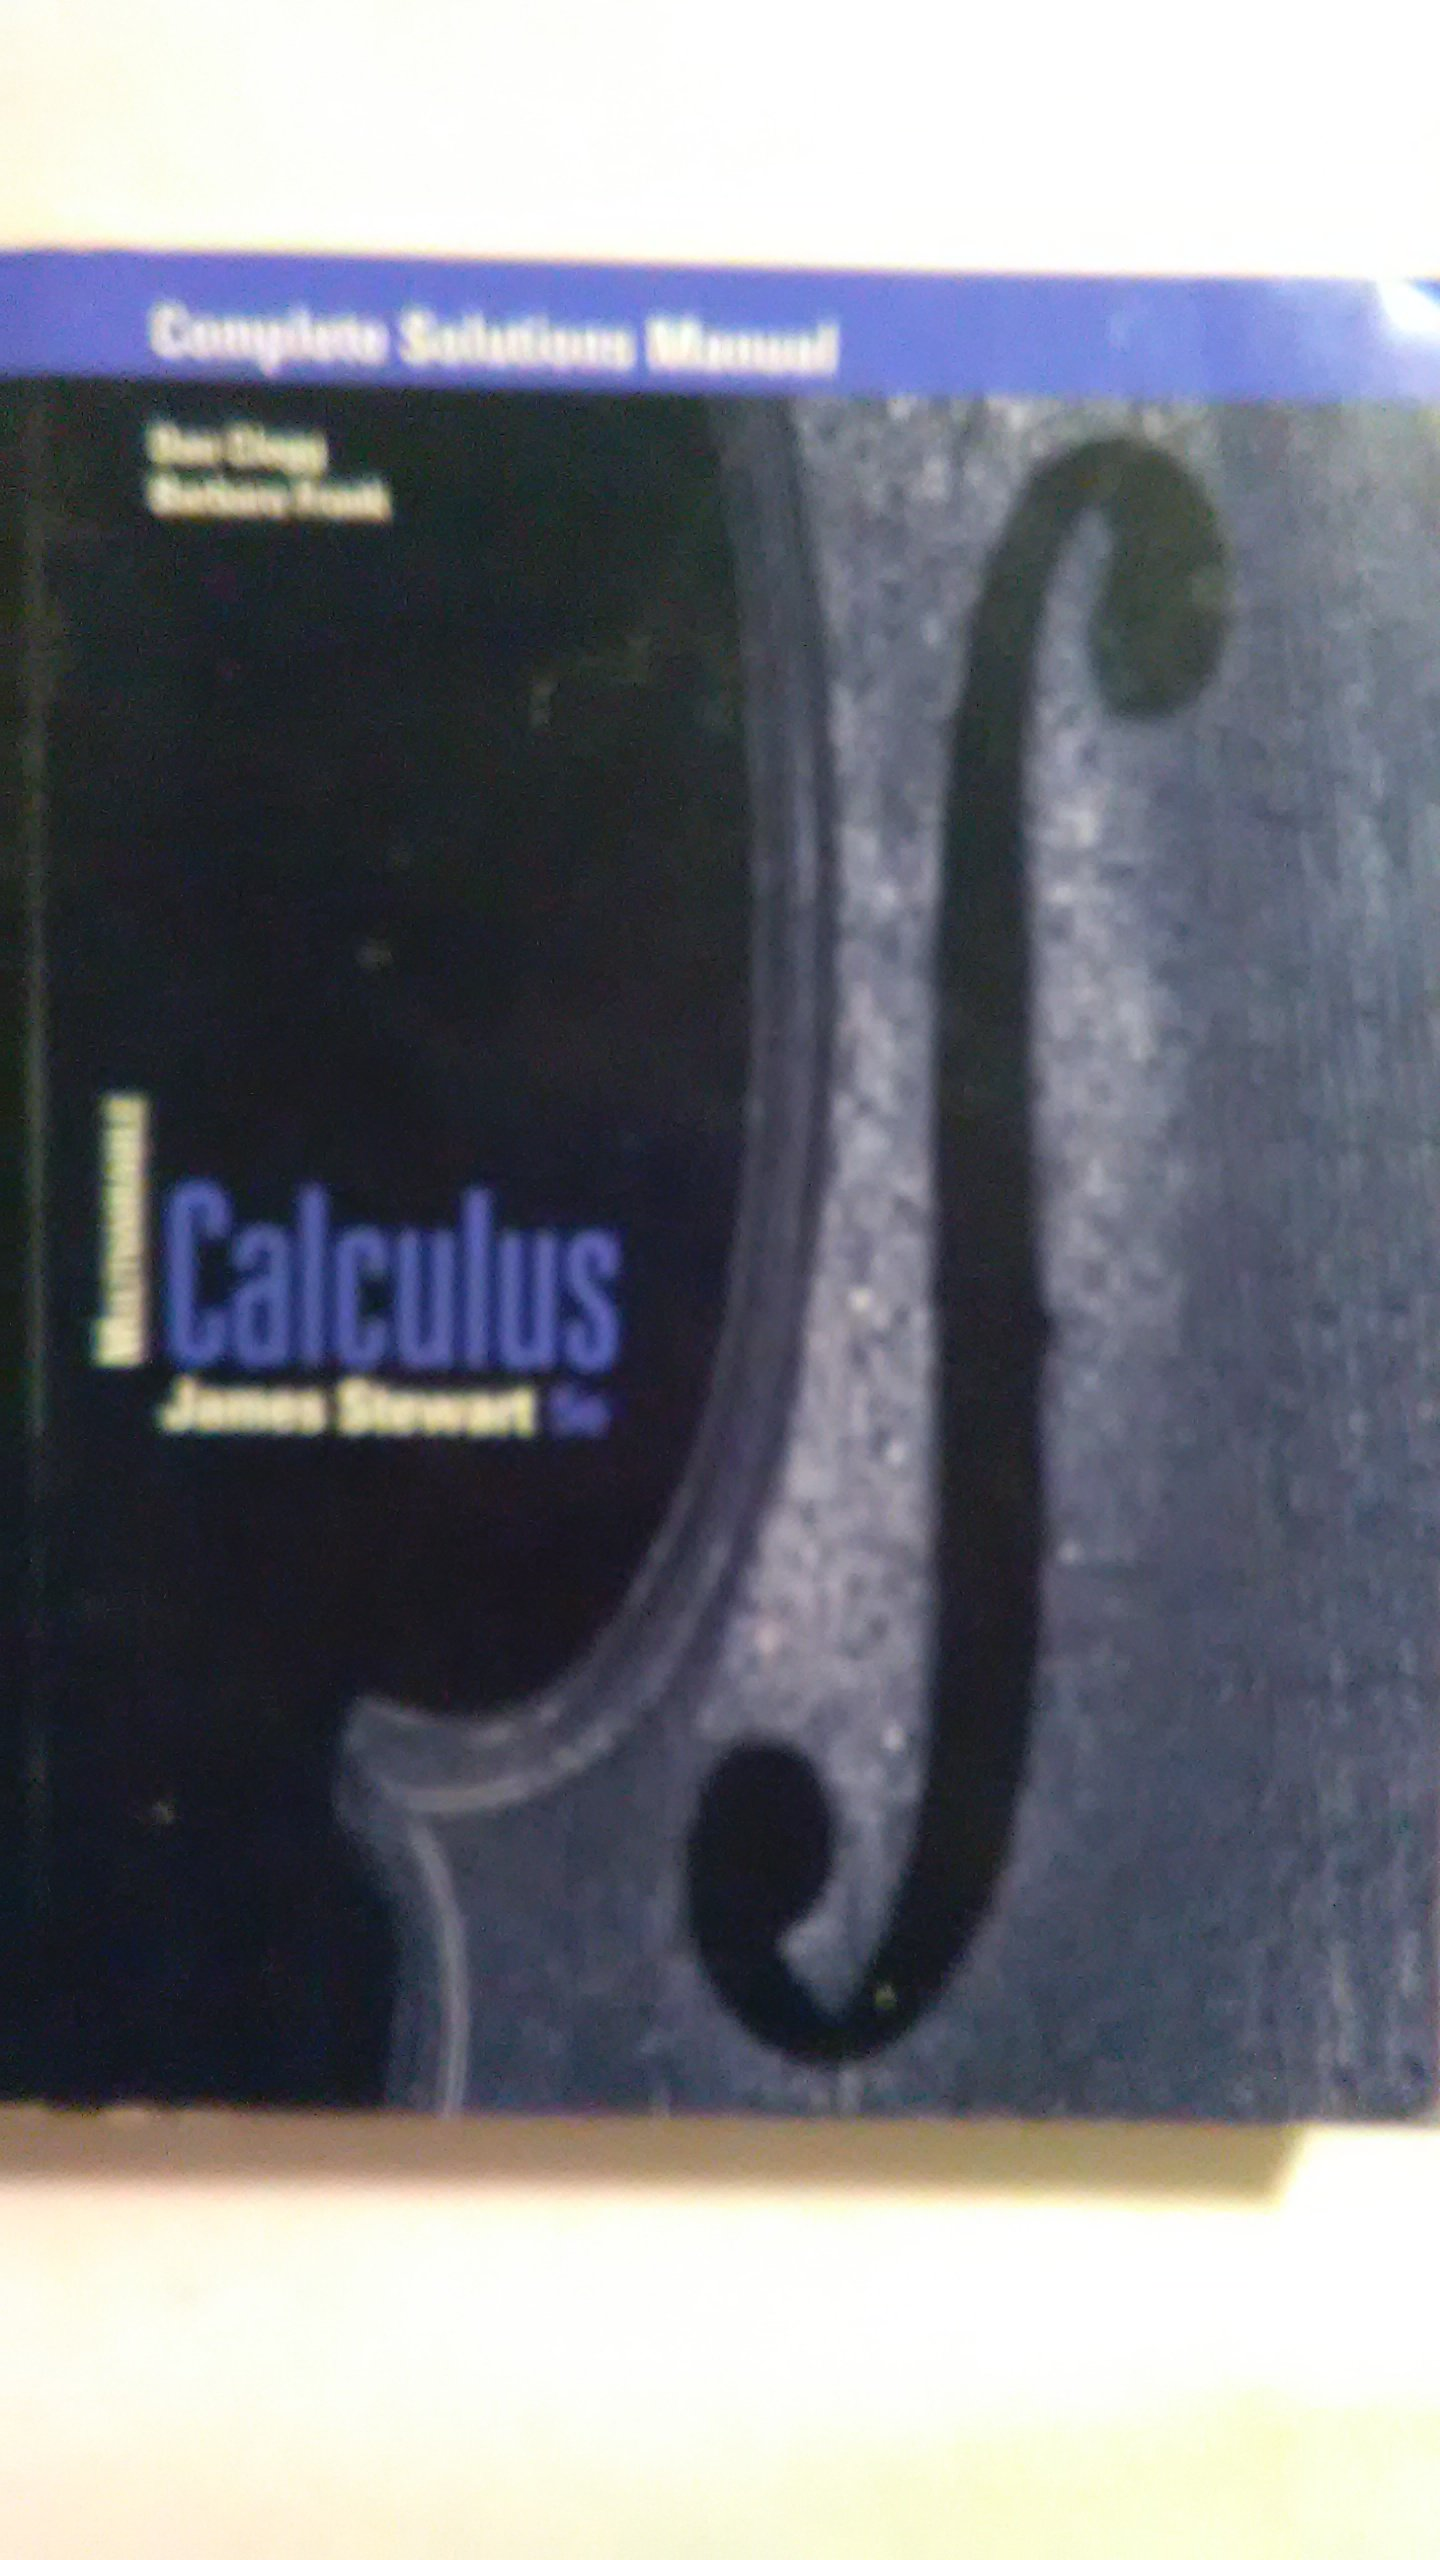 Calculus: Multivariable, Complete Solutions Manual, 5th Edition: James  Stewart: 9780534393595: Amazon.com: Books